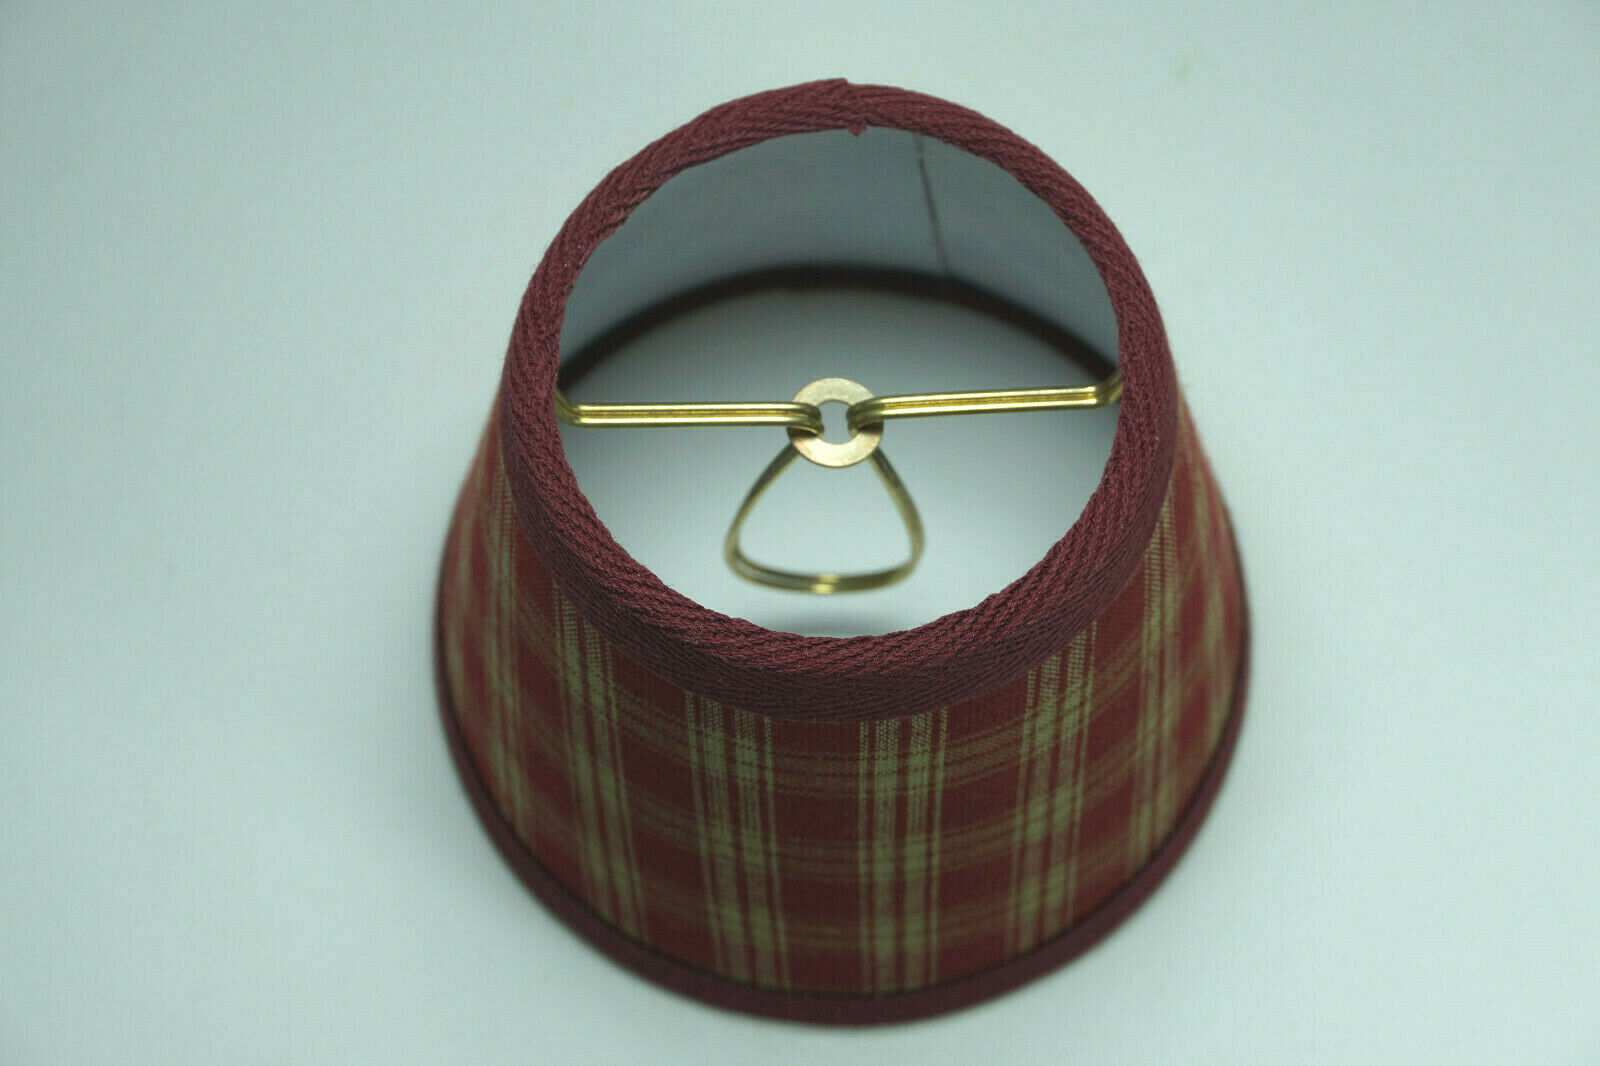 Country Burgundy Sturbridge Plaid Fabric Chandelier Candle Lampshade Lamp Shade